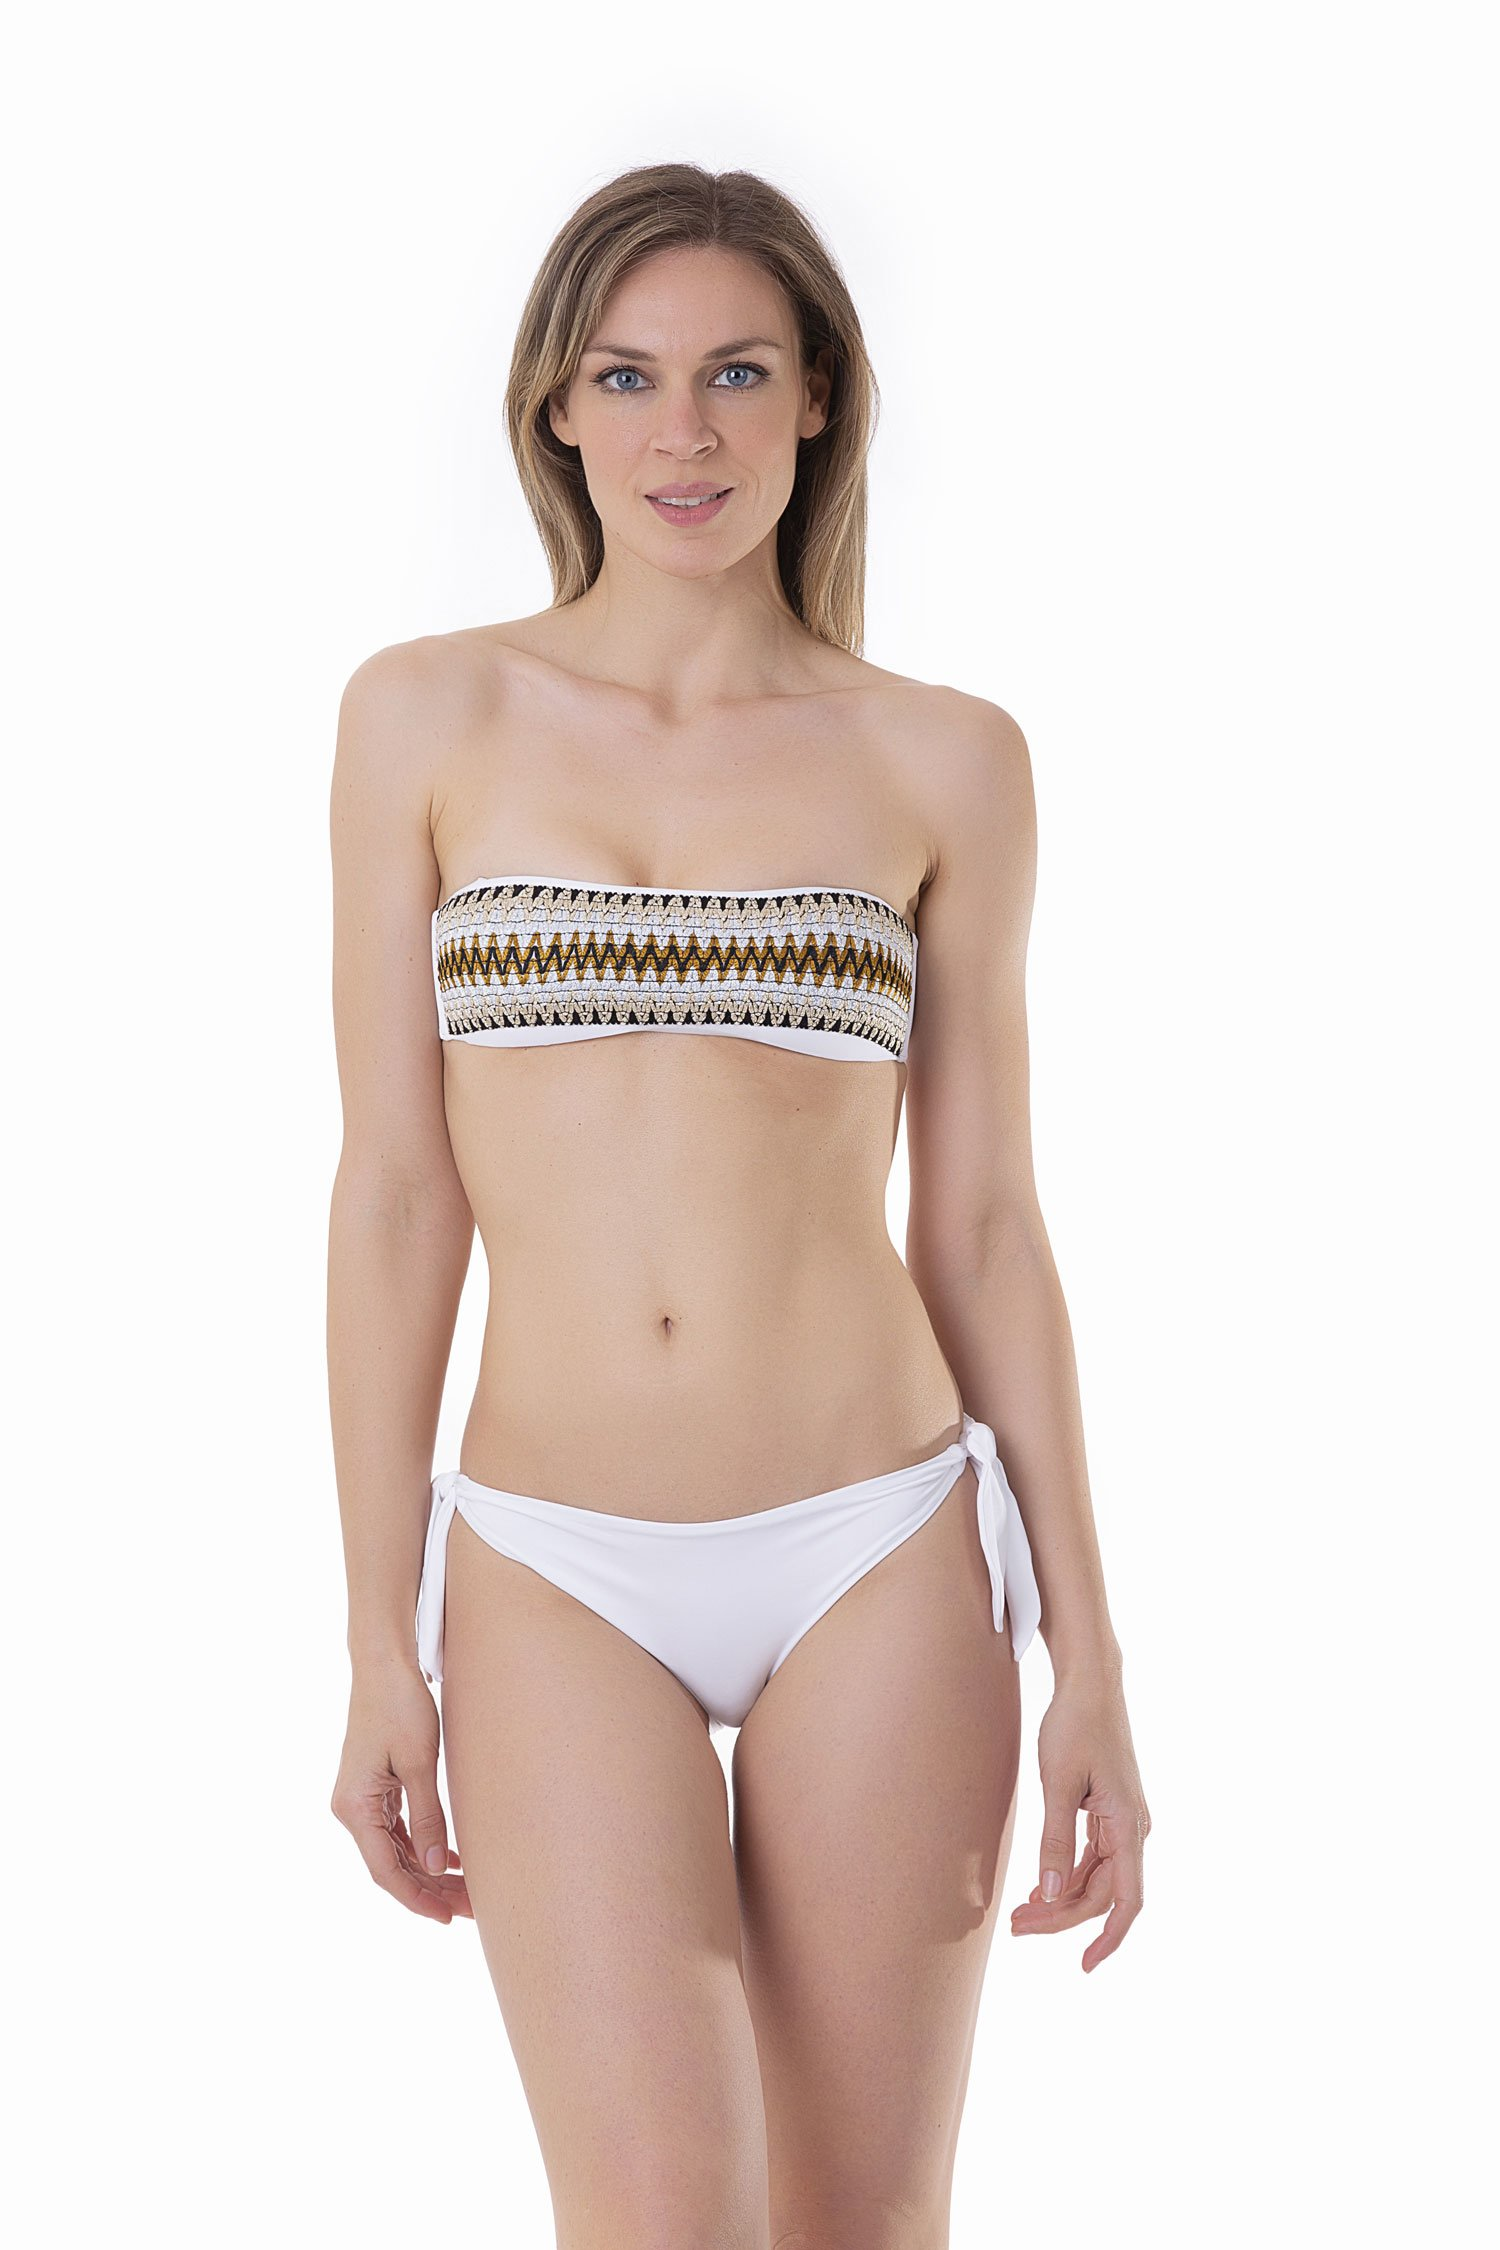 BANDEAU BIKINI WITH LUREX ELASTICS AND BOTTOM WITH TIES - Bianco White 001